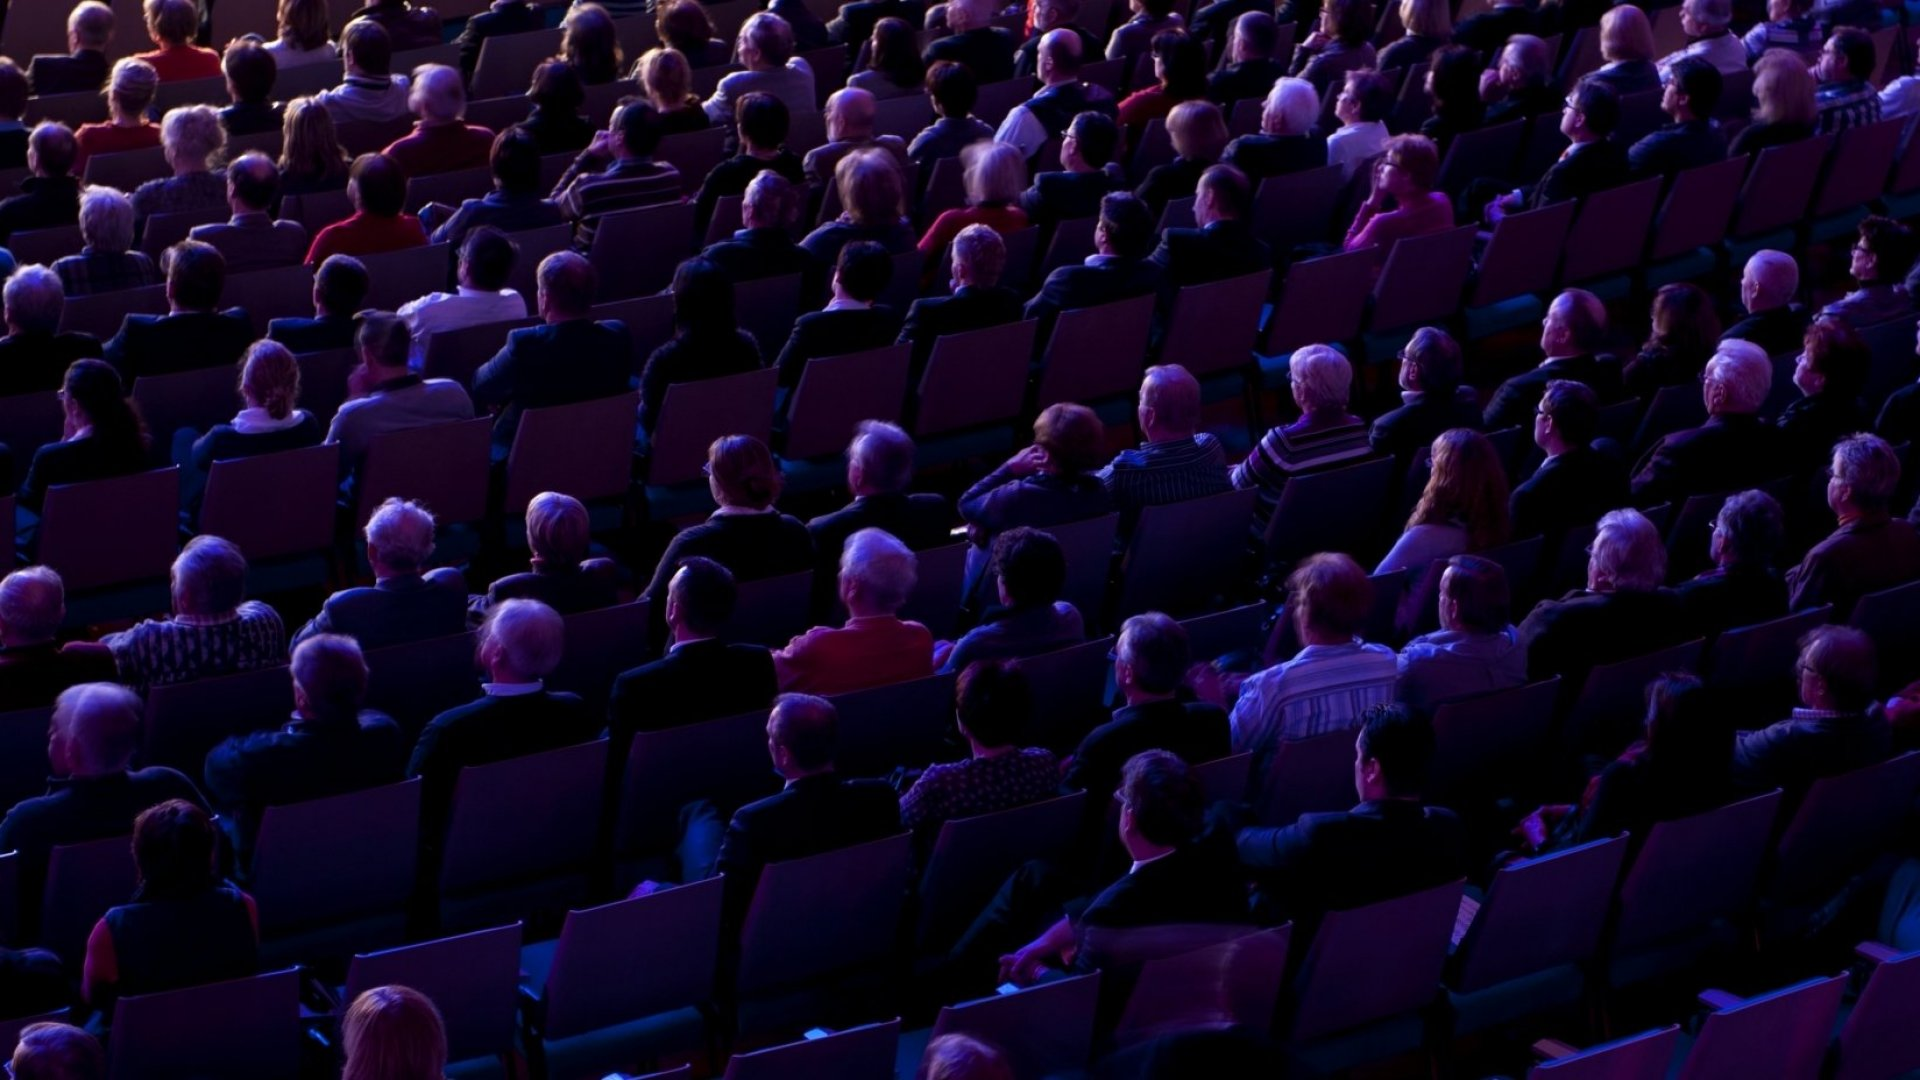 11 Clever Ways to Keep an Audience Engaged Without Saying a Word